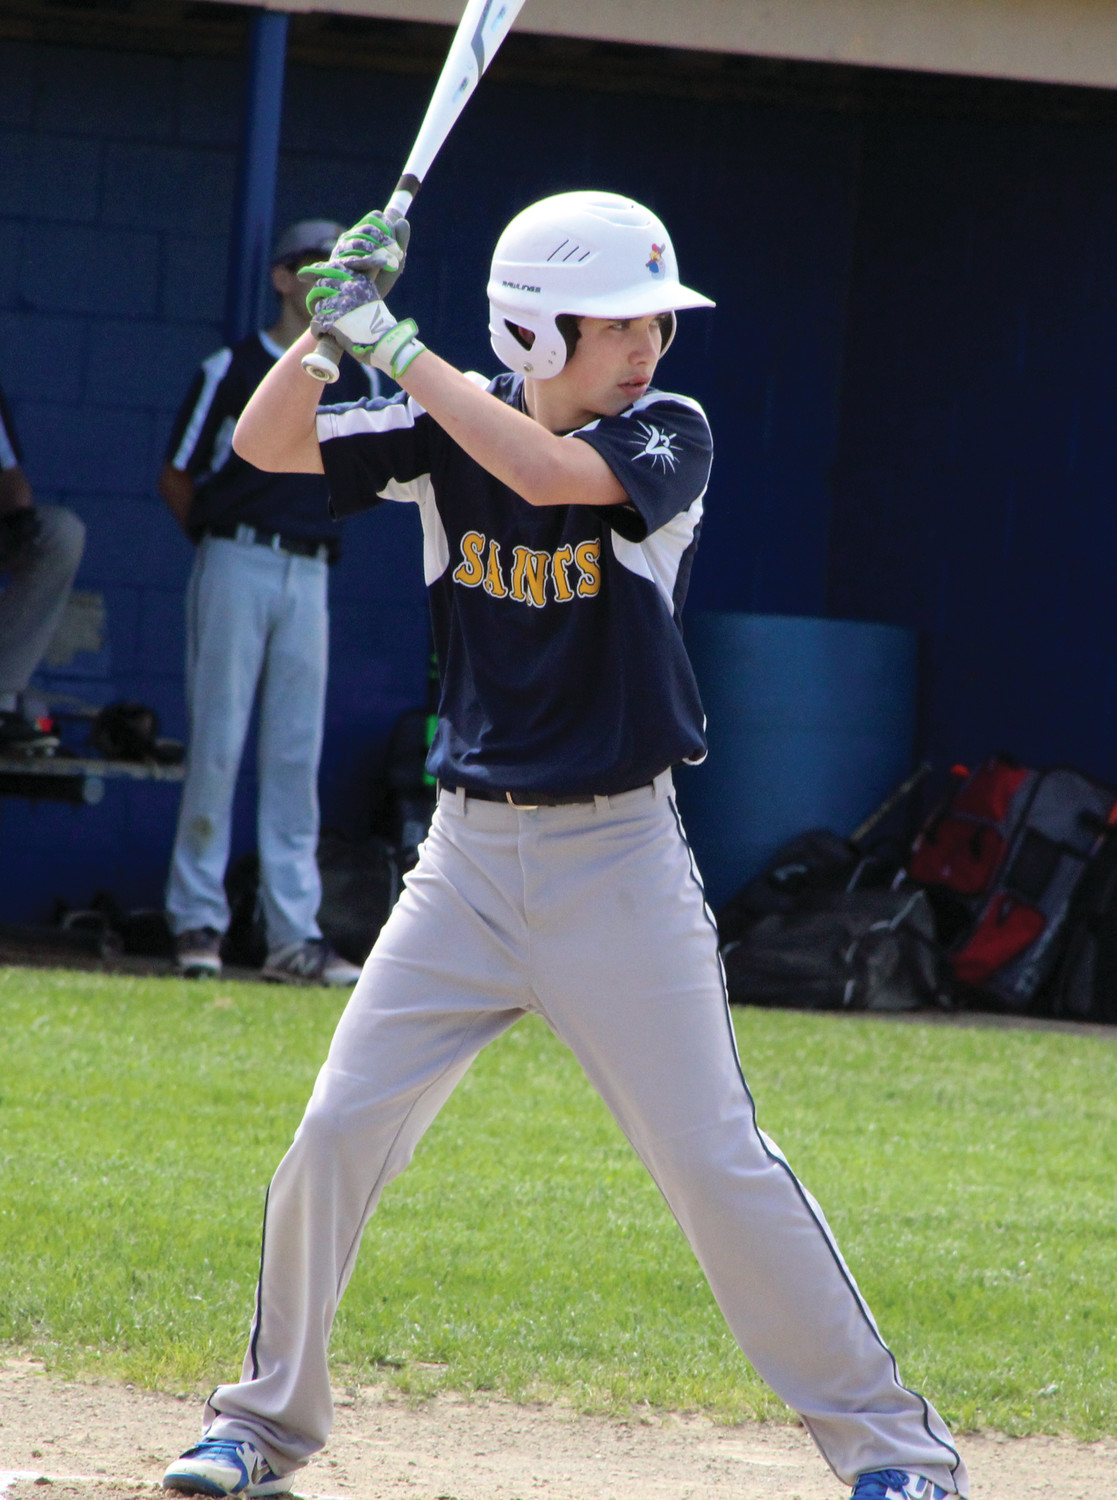 AT THE DISH: Immaculate Conception's Owen Smith bats against Vets.